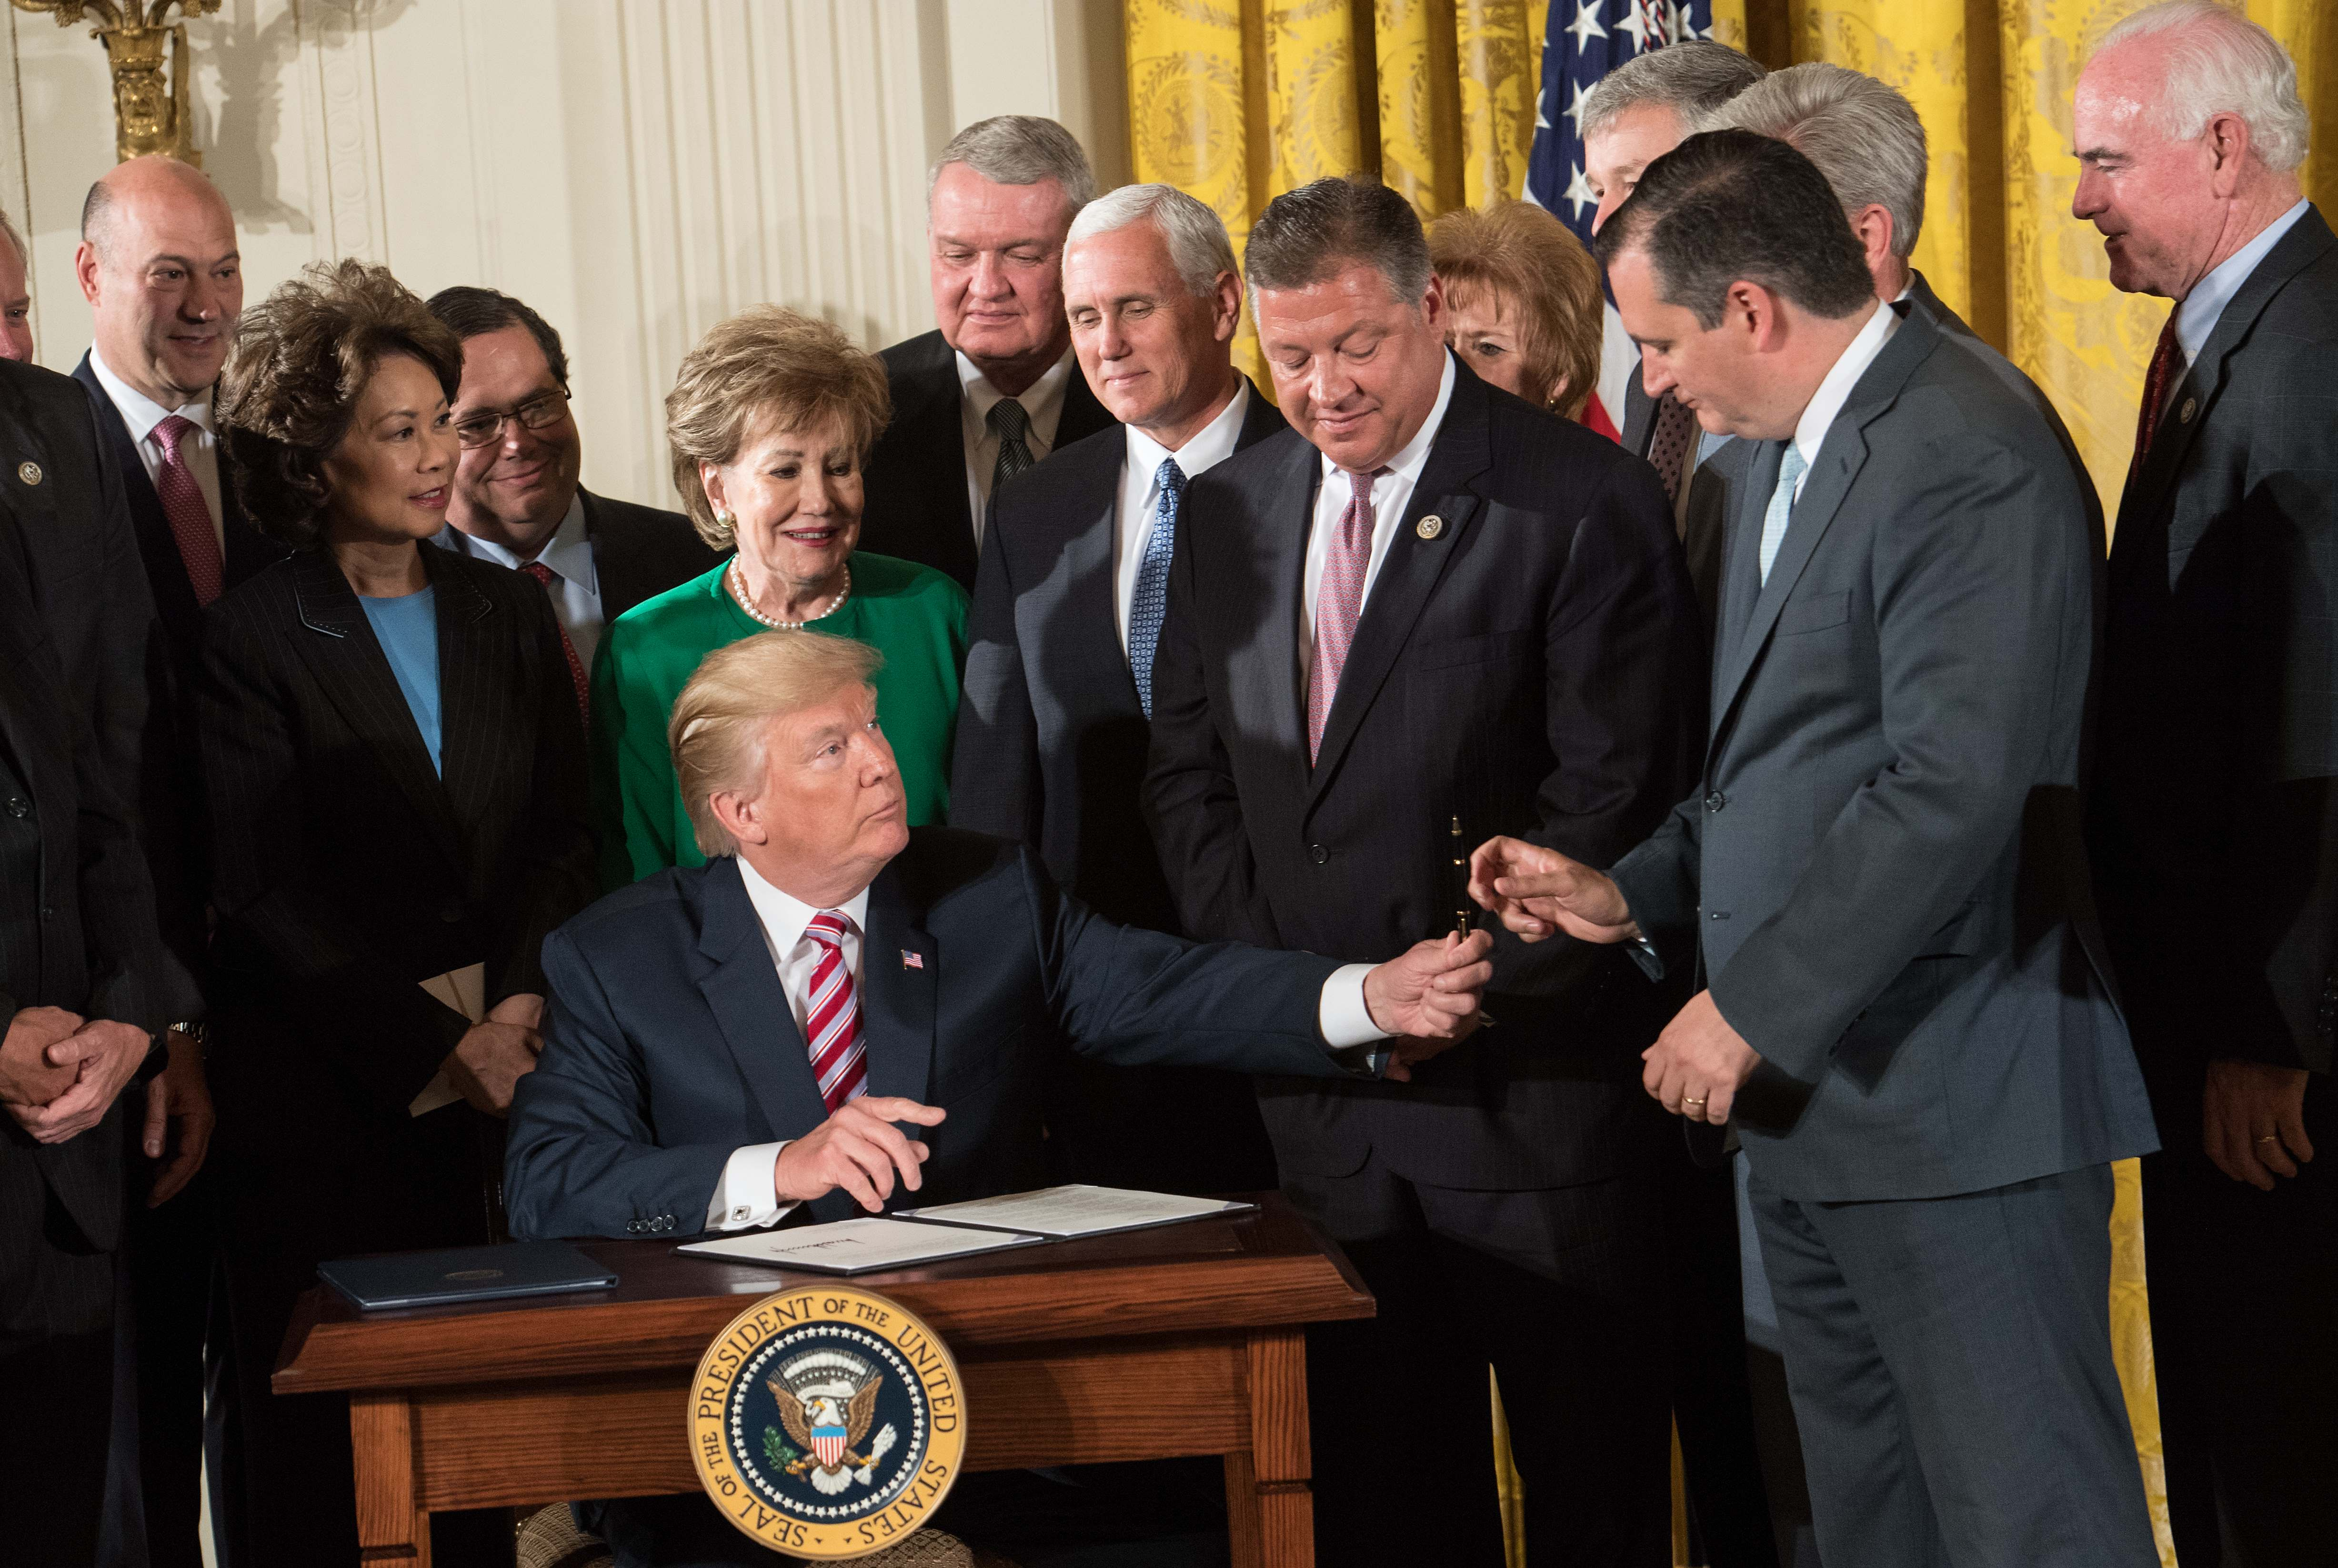 US President Donald Trump hands a pen to Republican US Senator from Texas Ted Cruz after signing a letter of principles on air traffic control reform after announcing the Air Traffic Control Reform Initiative in the East Room at the White House in Washington, DC, on June 5, 2017. (Photo: NICHOLAS KAMM/AFP/Getty Images)